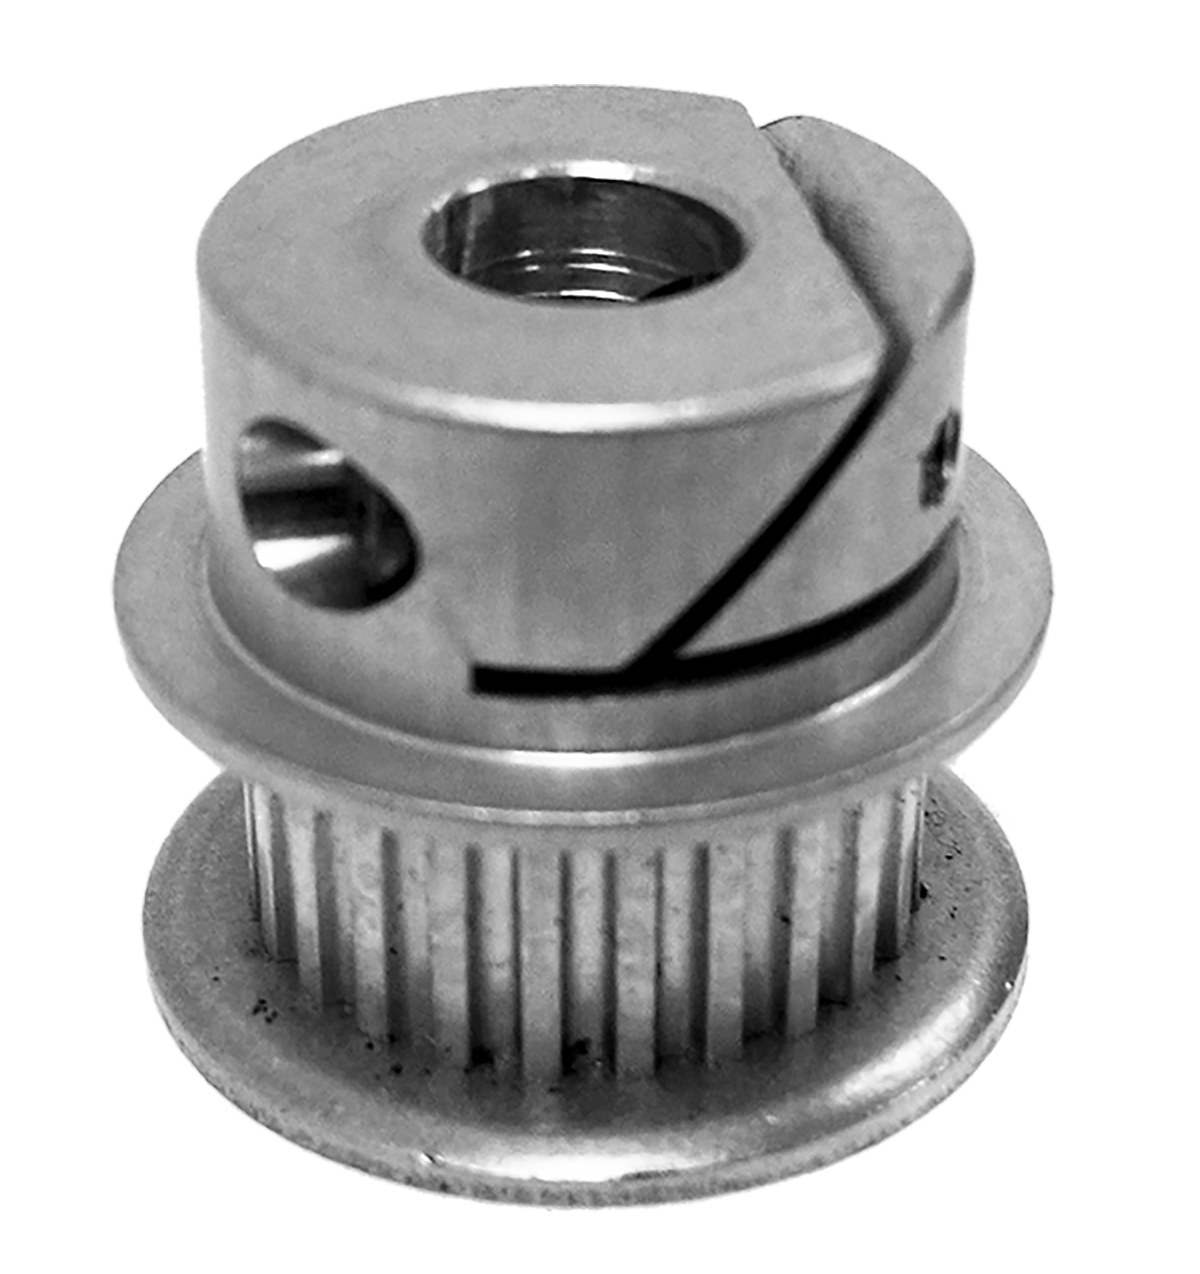 60MP025-IA3 - E-Z Lock Hub Aluminum Imperial Pitch Pulleys